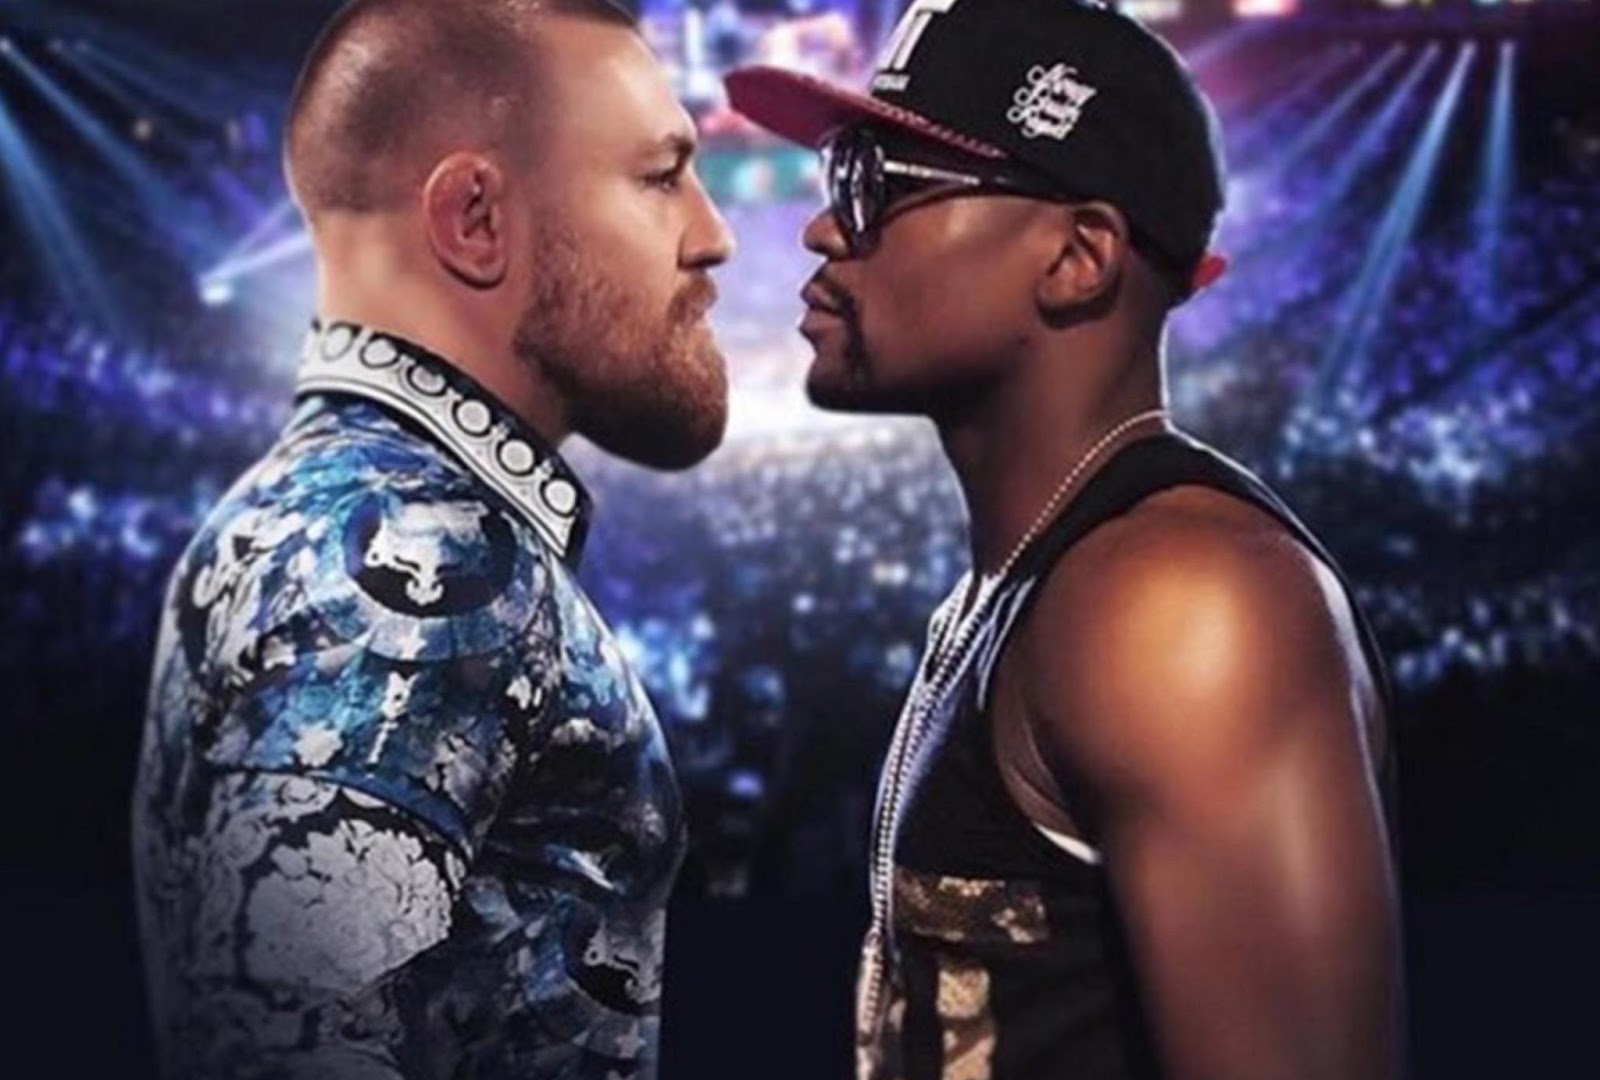 FLOYD MAYWEATHER VS CONOR MCGREGOR 3